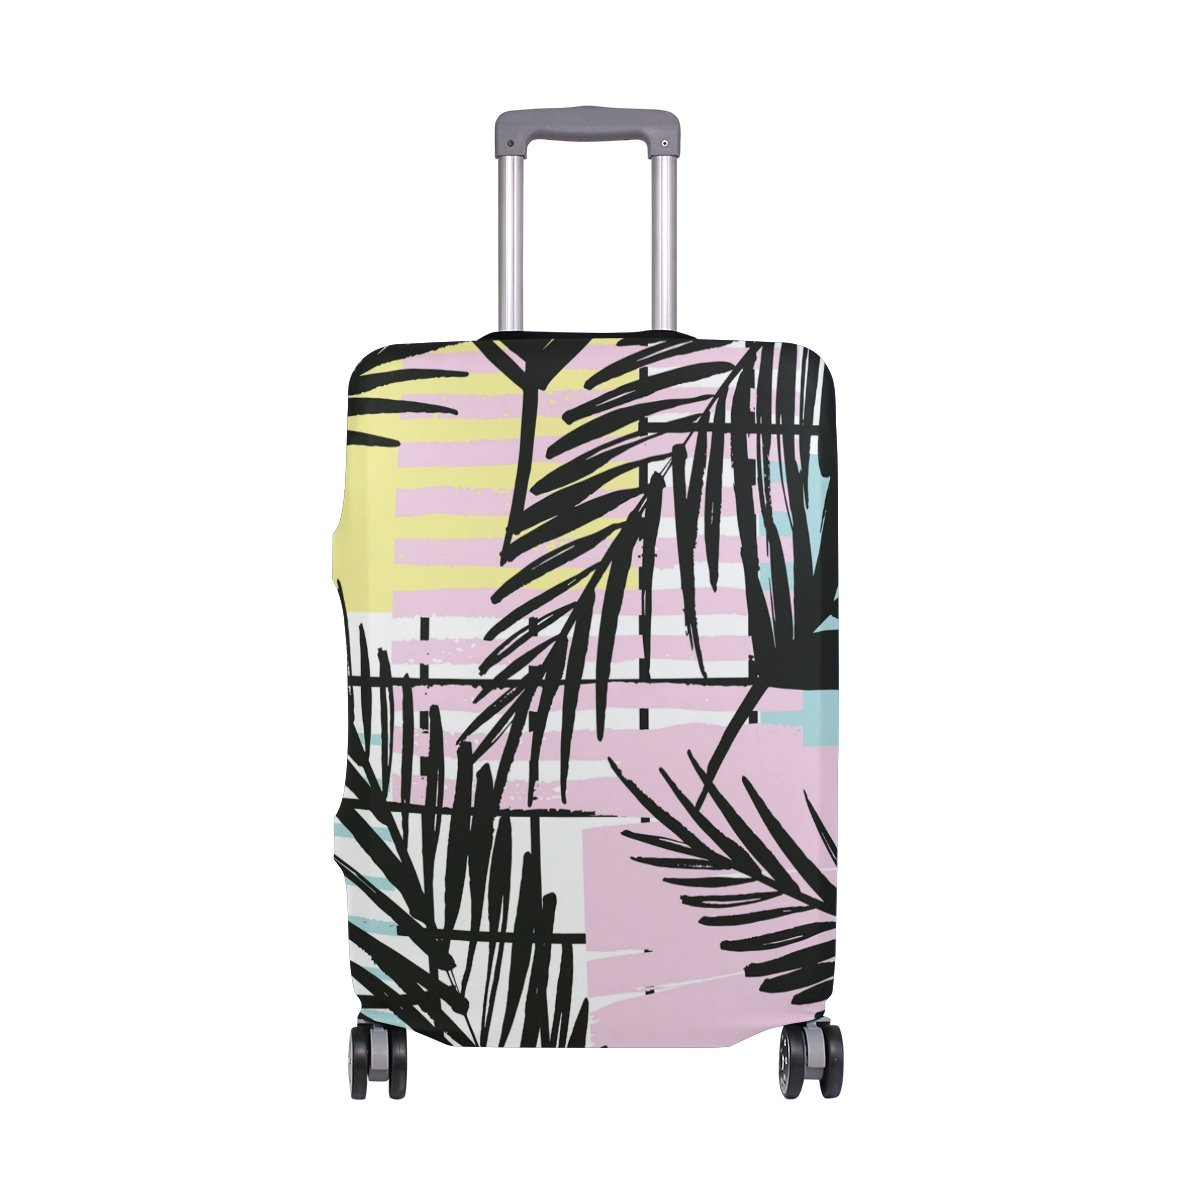 Summer Beach Palm Trees Tropical Striped Suitcase Luggage Cover Protector for Travel Kids Men Women